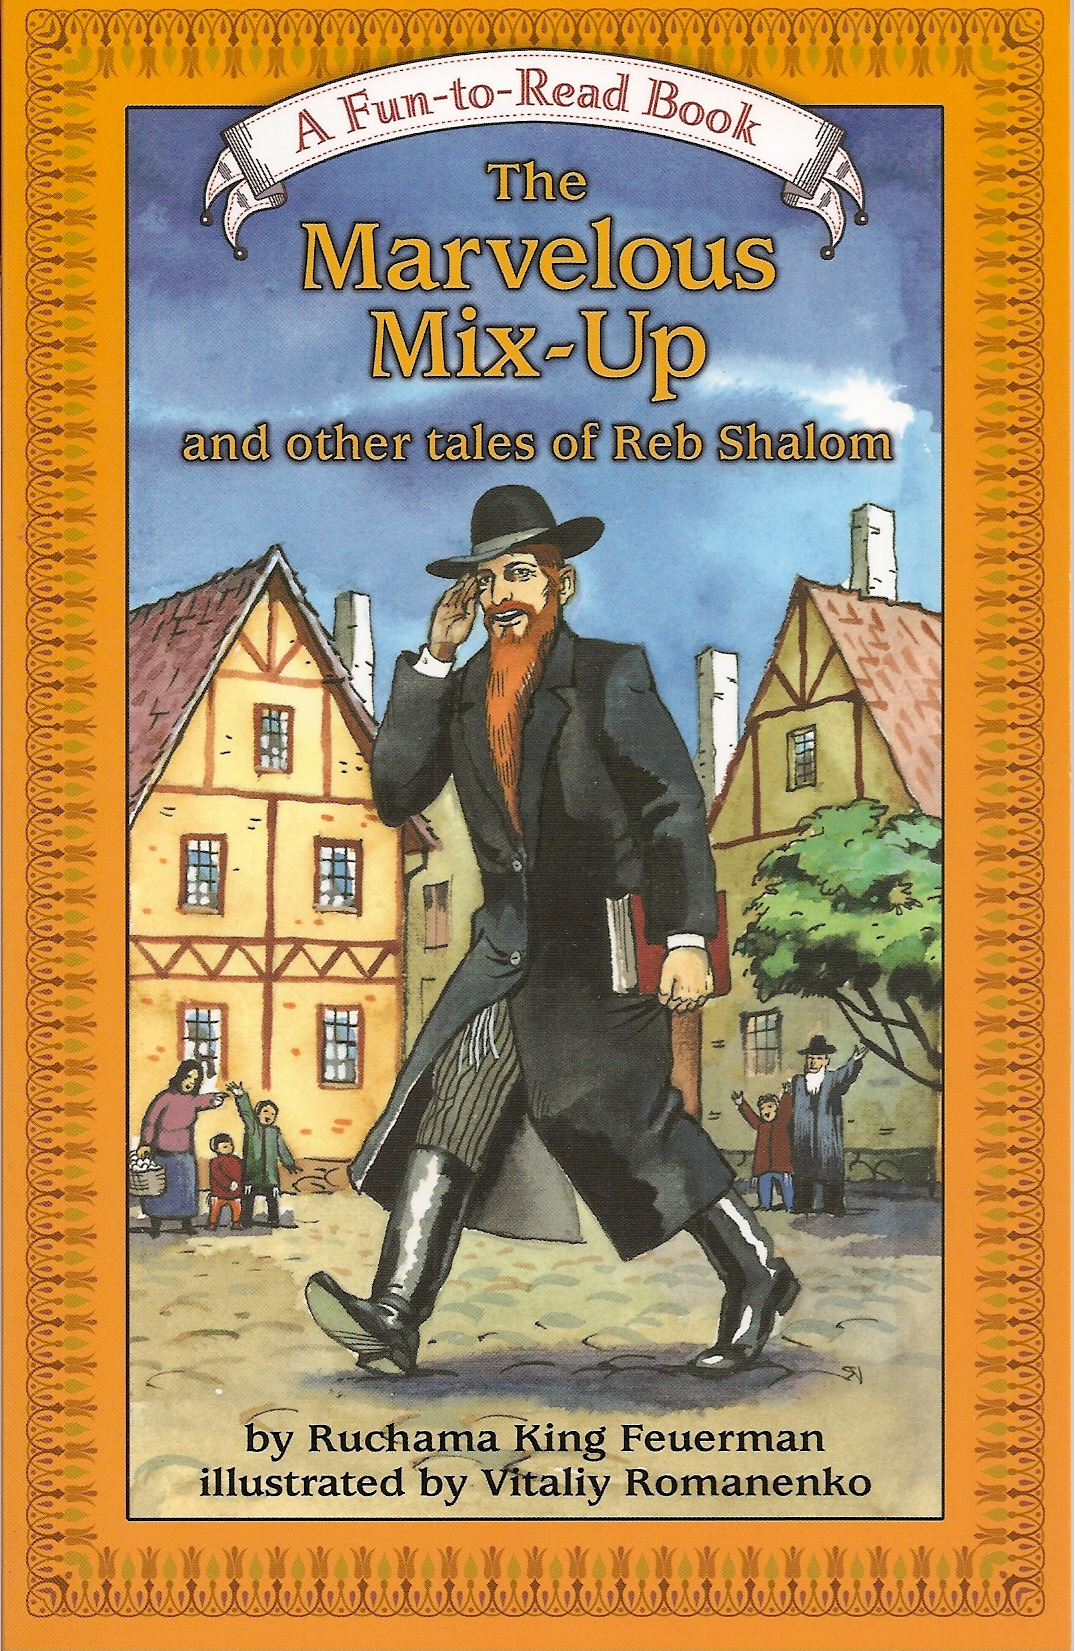 Marvelous Mix Up and other tales of Reb Shalom